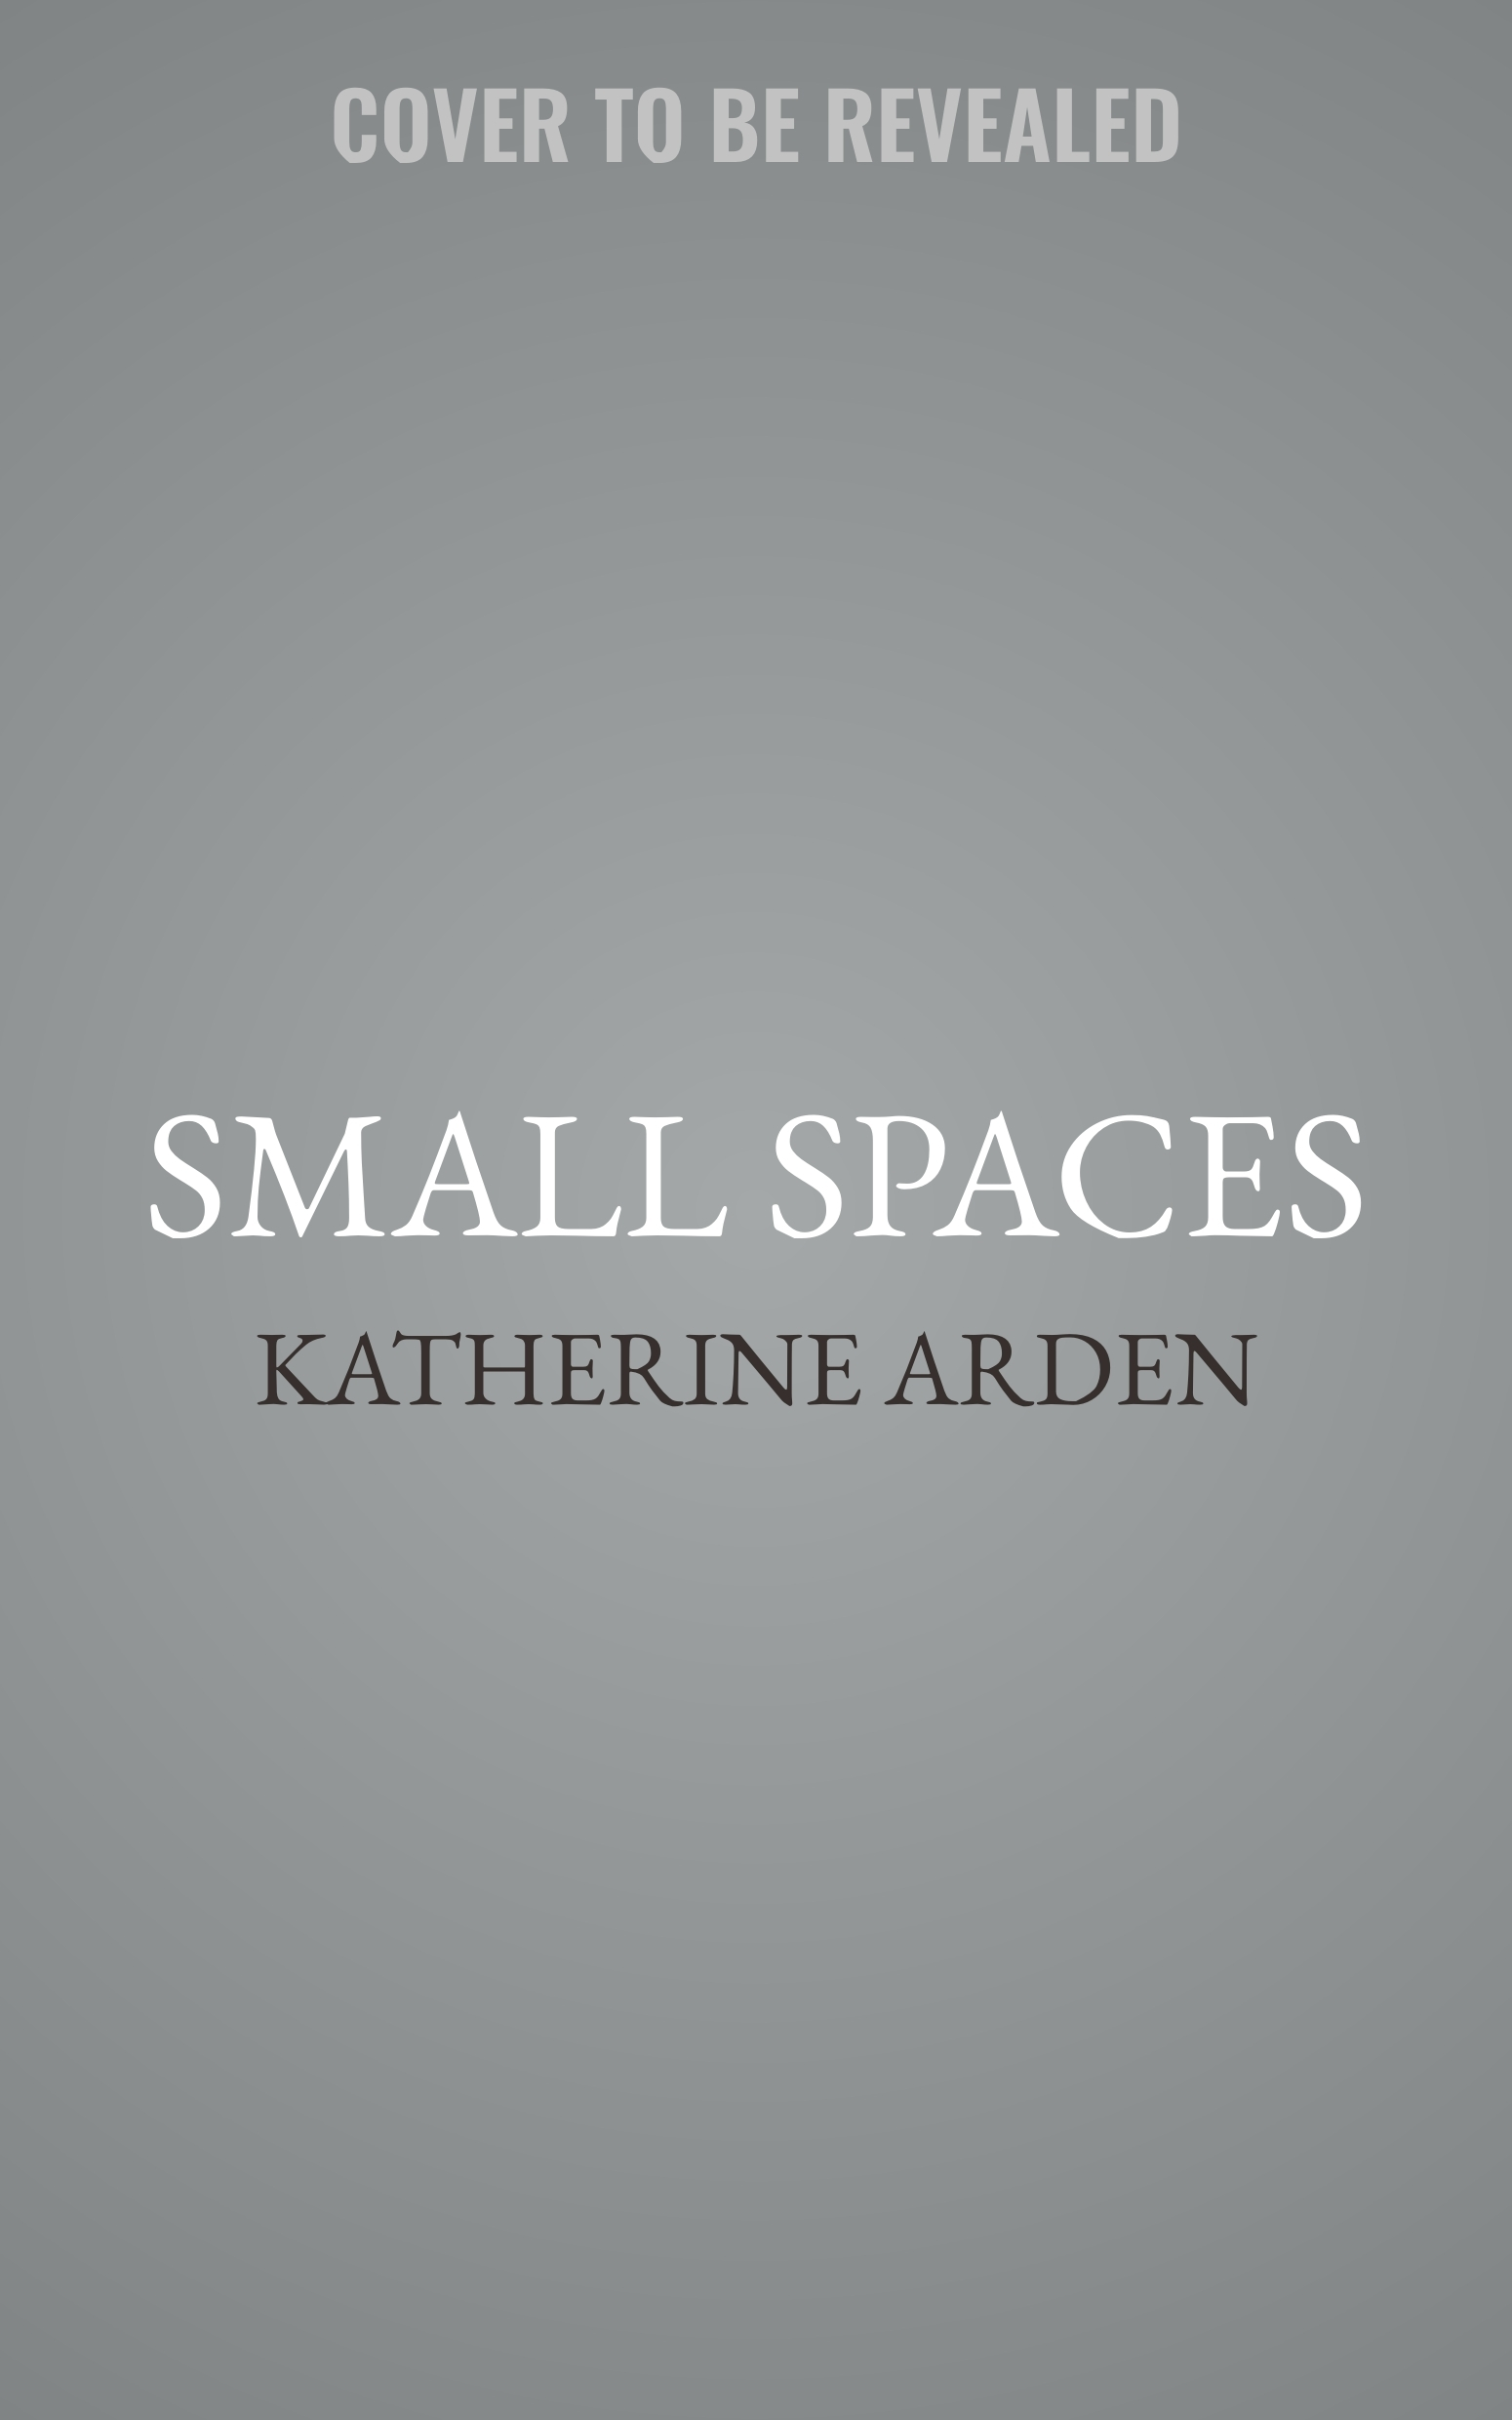 Small Spaces Audiobook